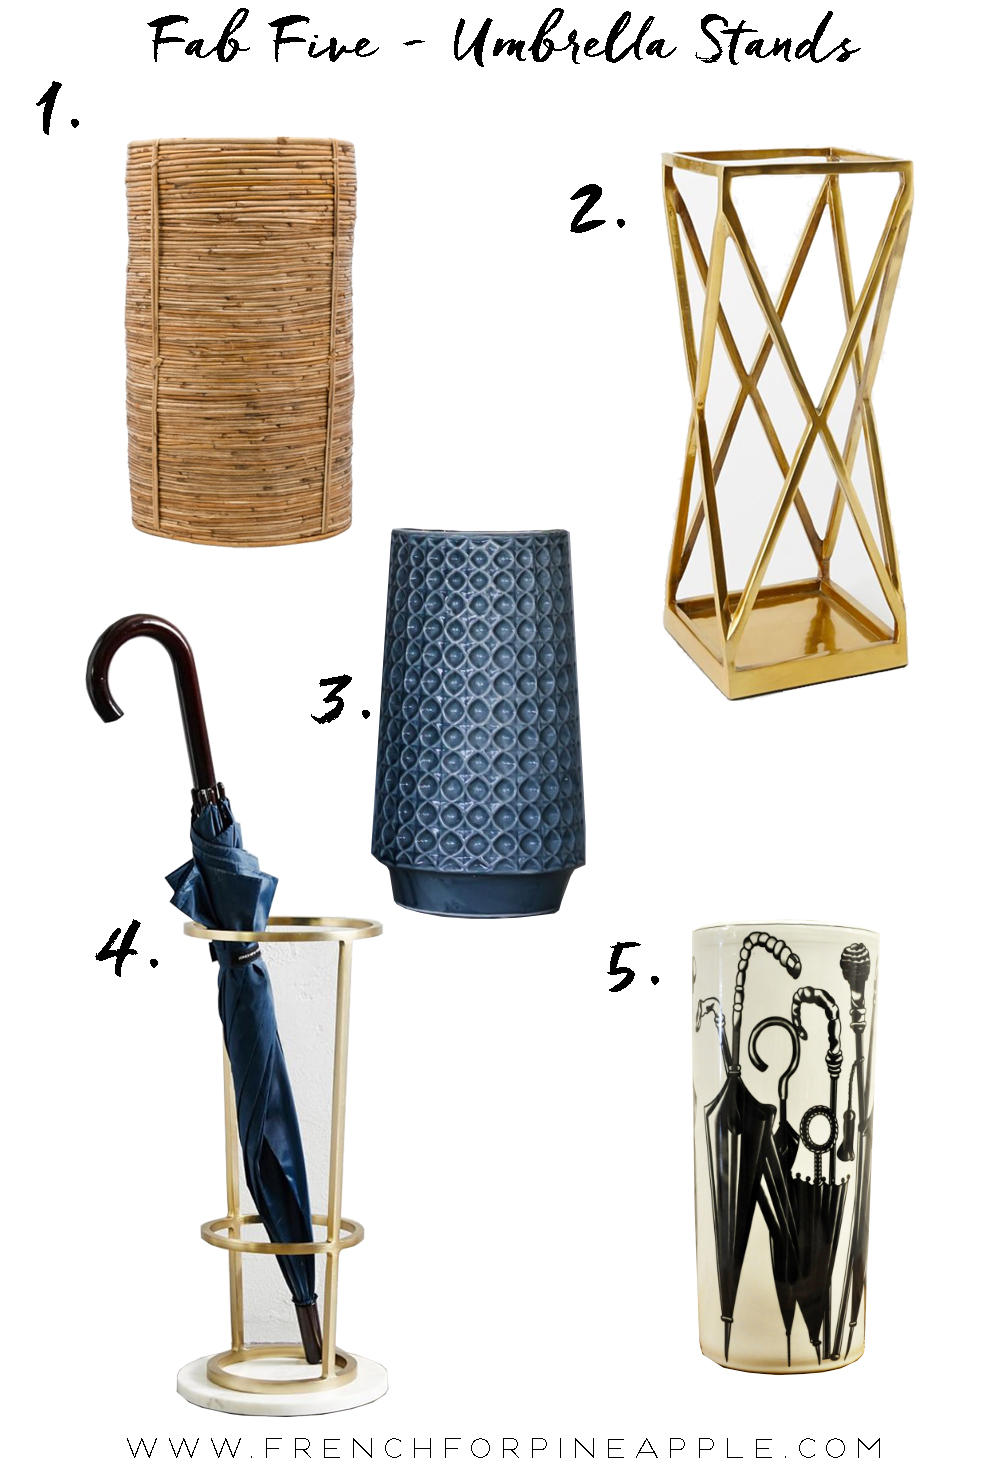 Fab Five Umbrella Stands - French For Pineapple Blog